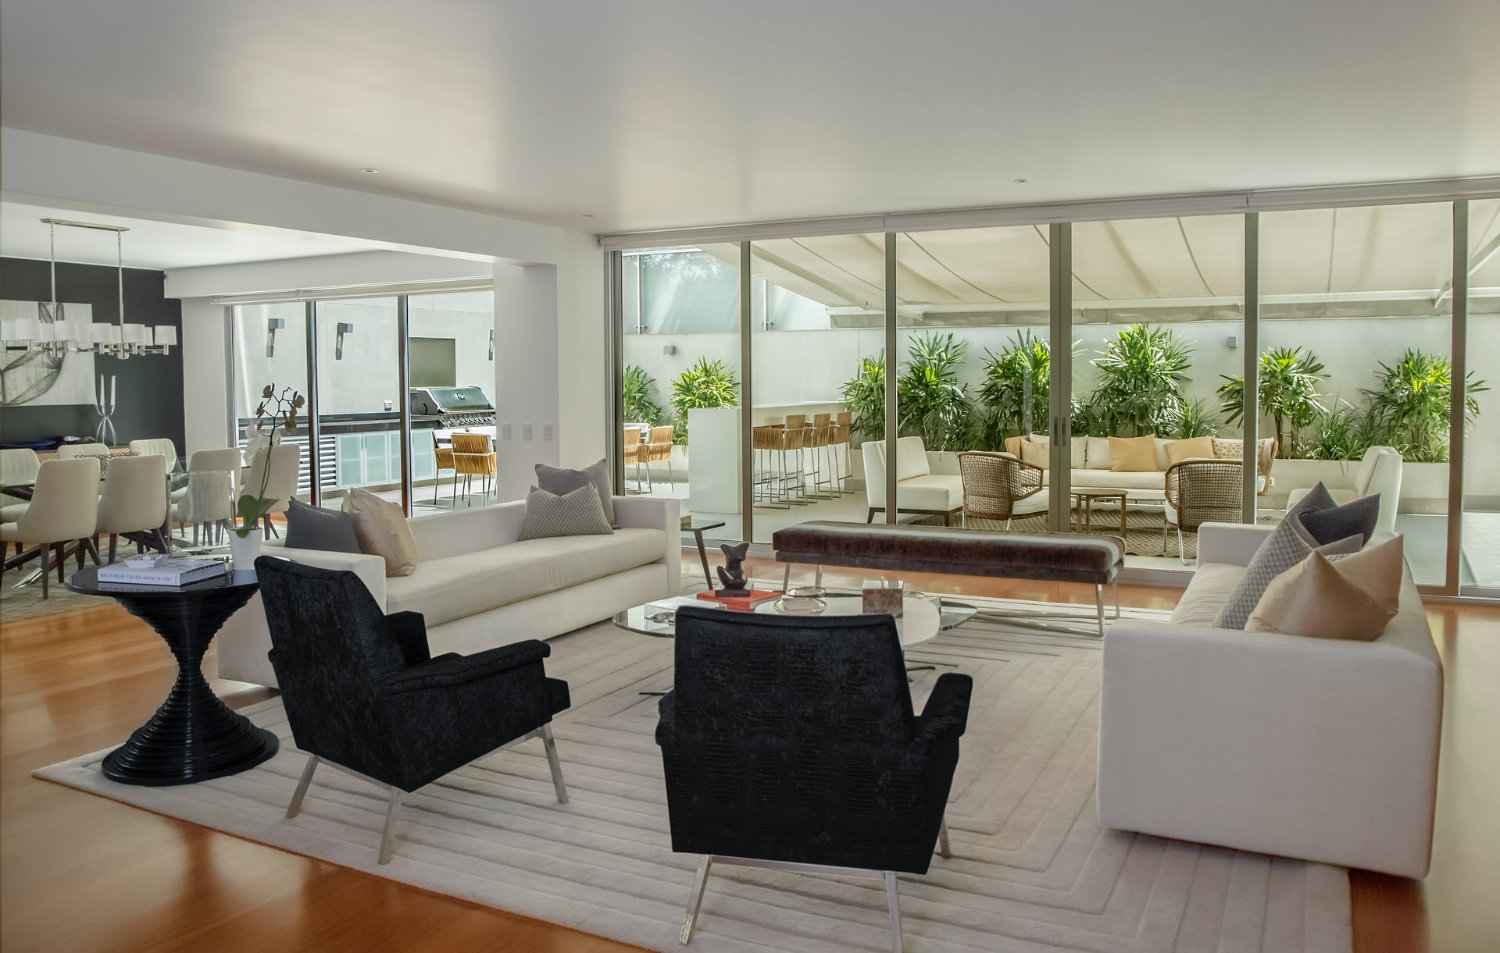 Top Design Features Perfect For a Rental Property